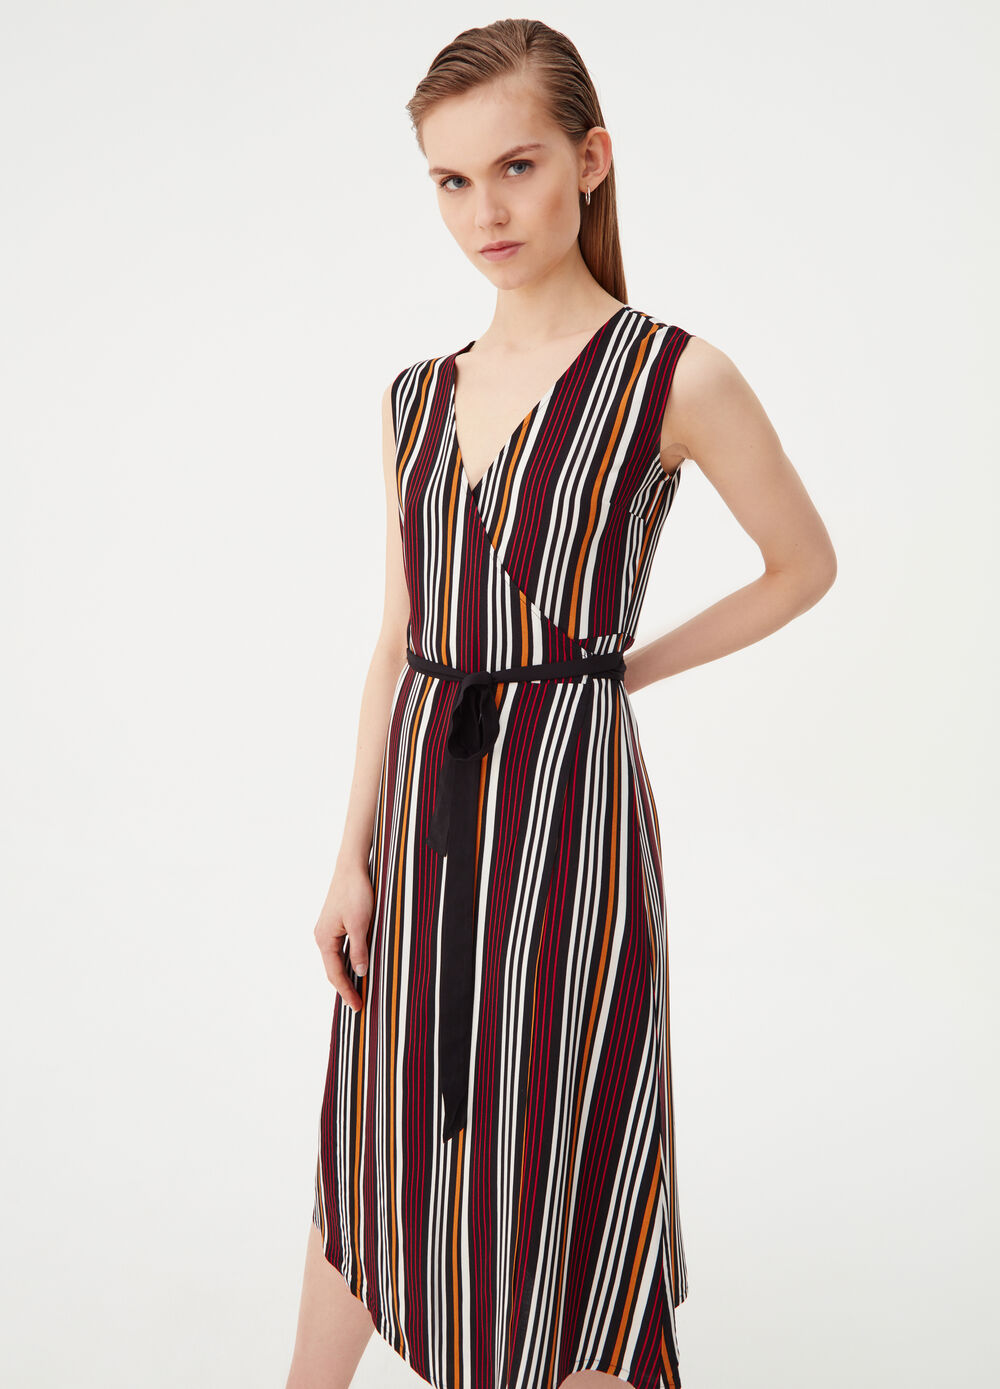 Sleeveless dress with crossover front